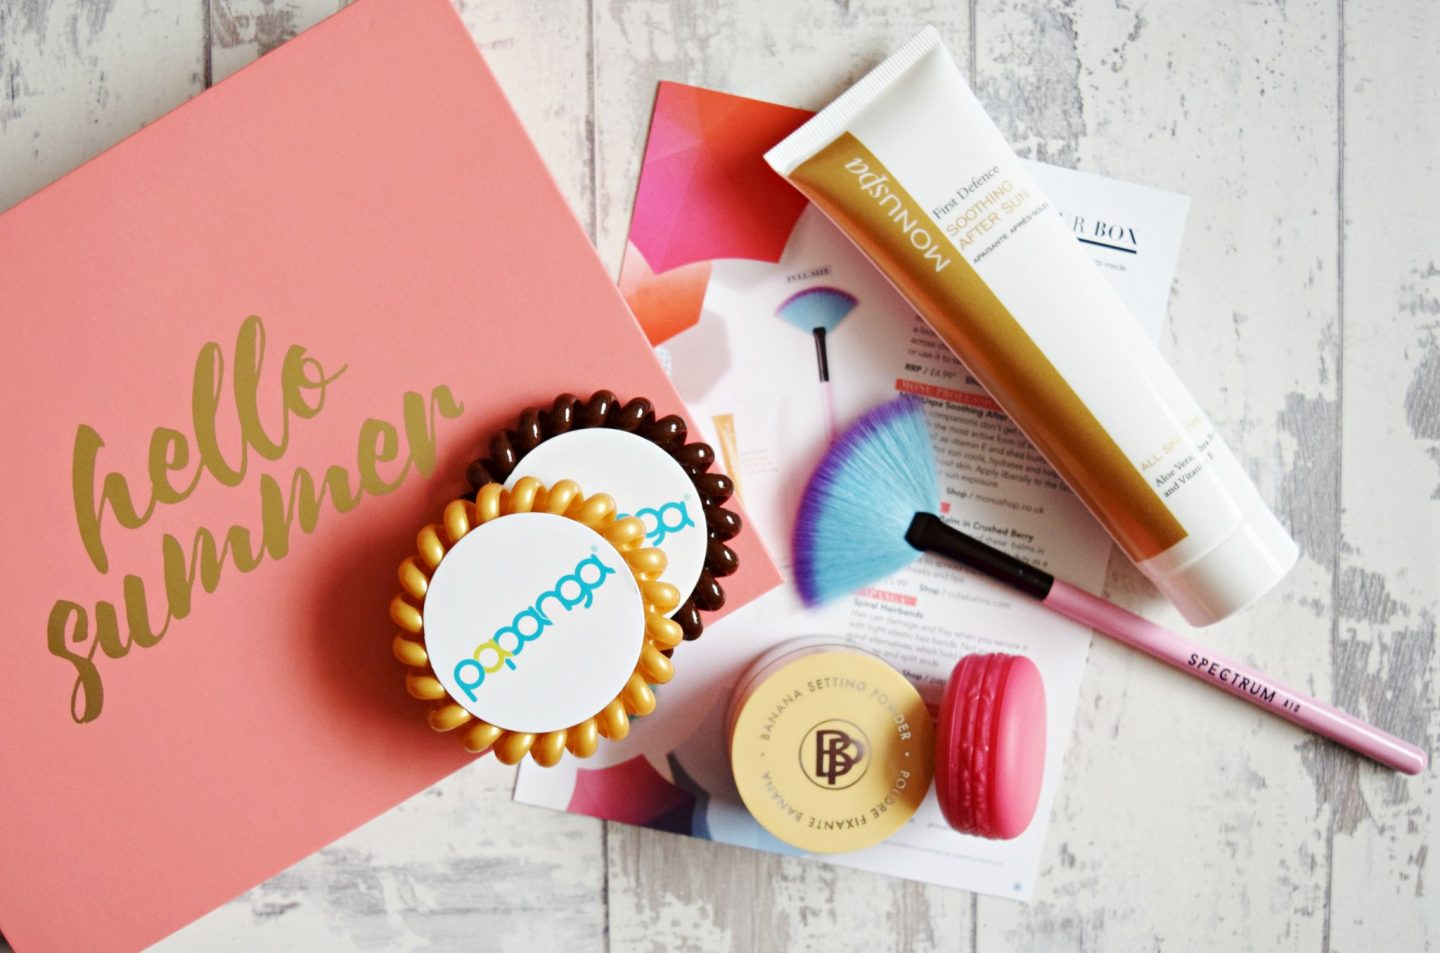 Glossybox July 2017 box contents